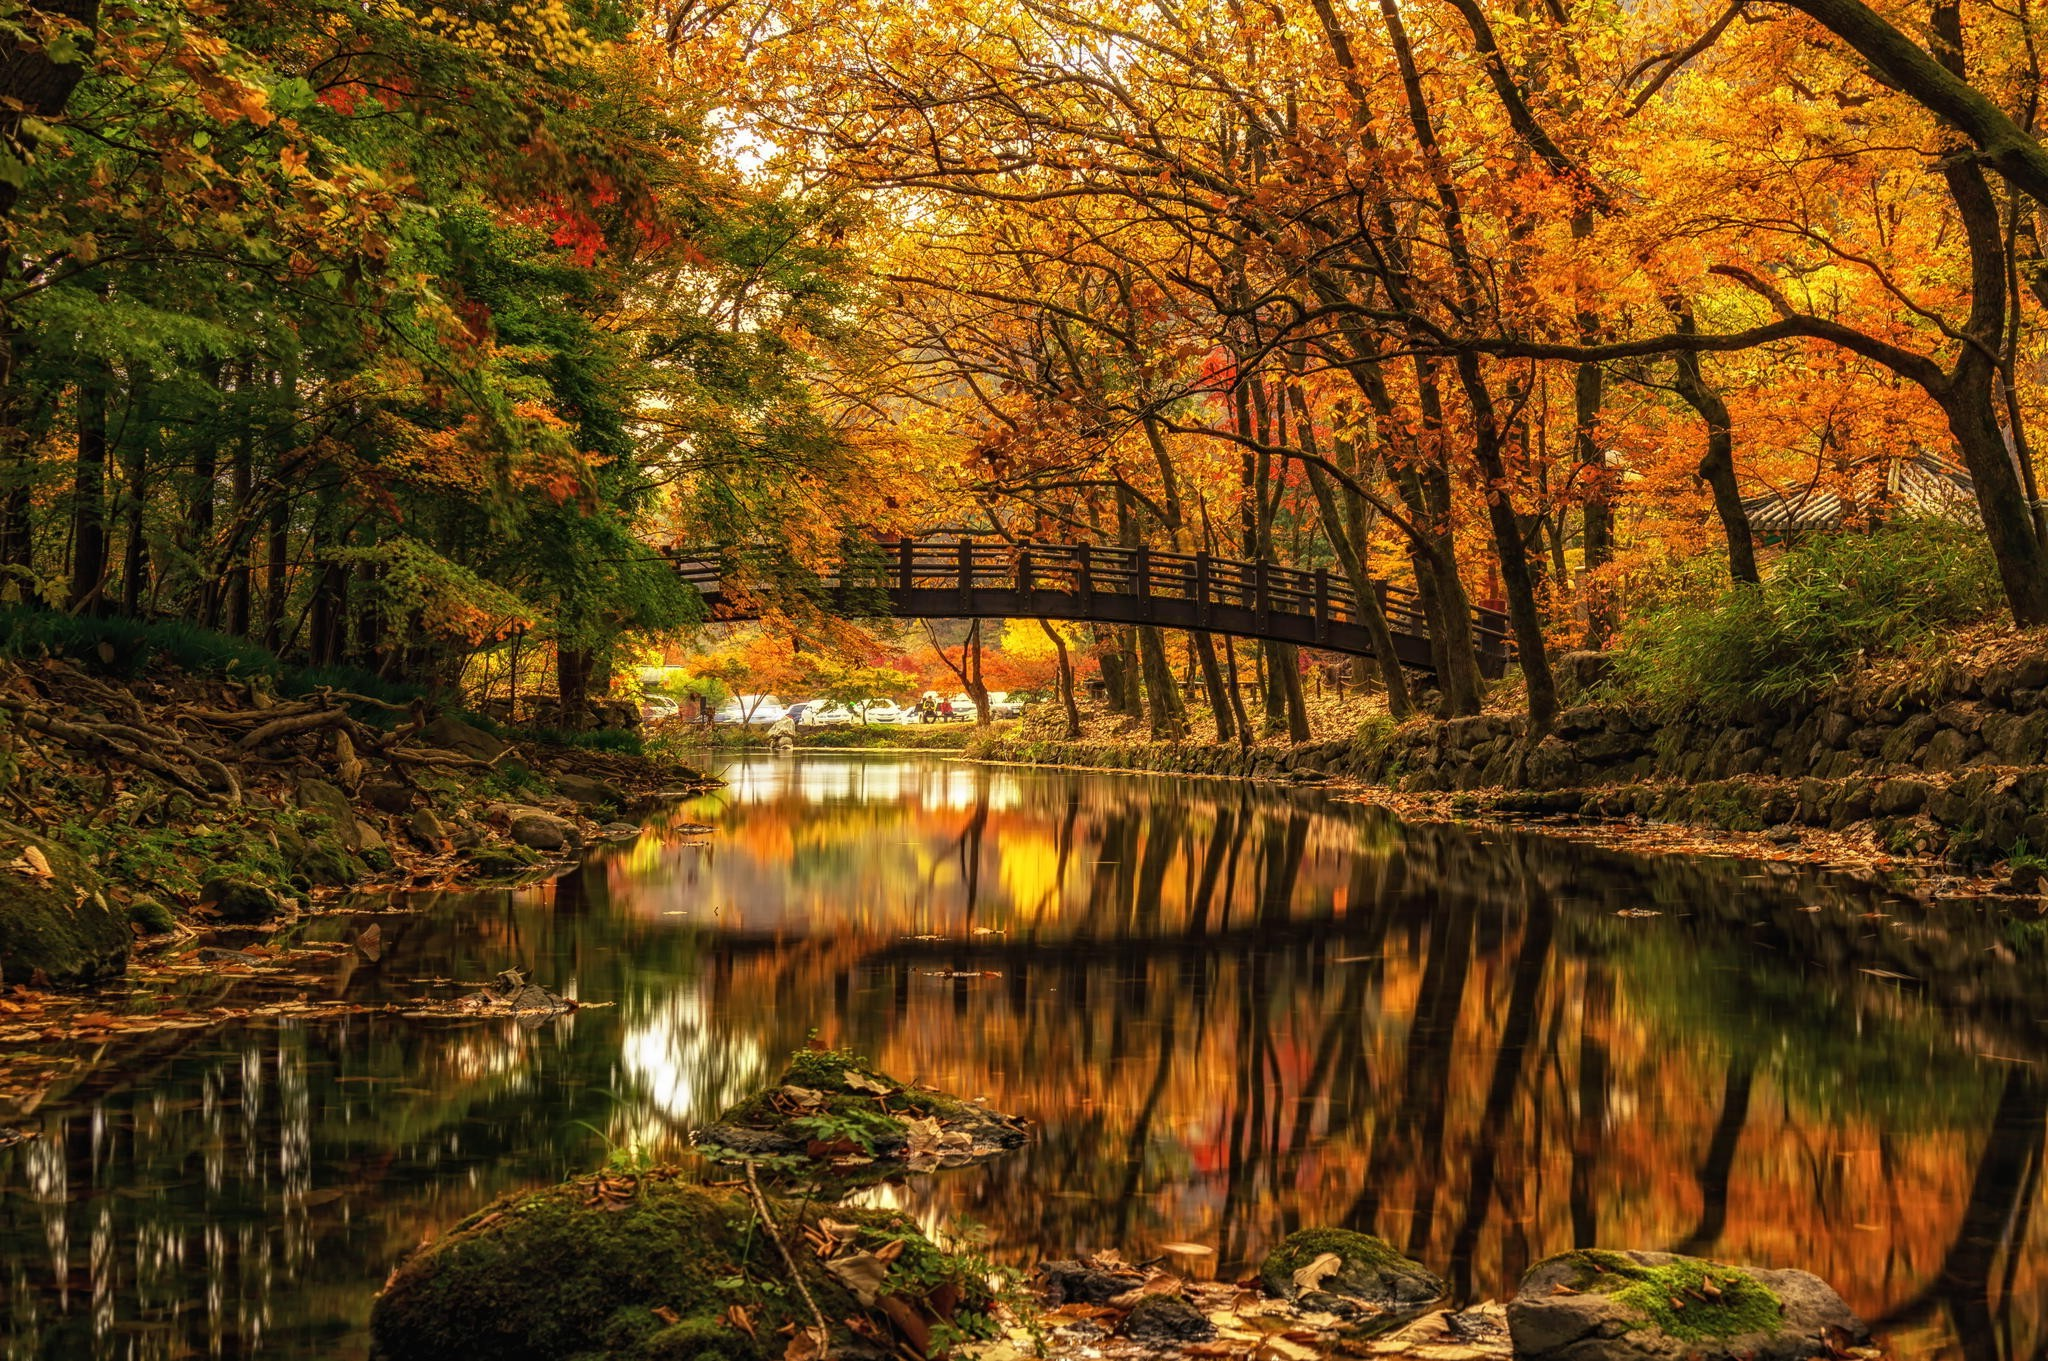 Fall Themed Computer Wallpaper Nature Landscape Water Trees Forest River Bridge